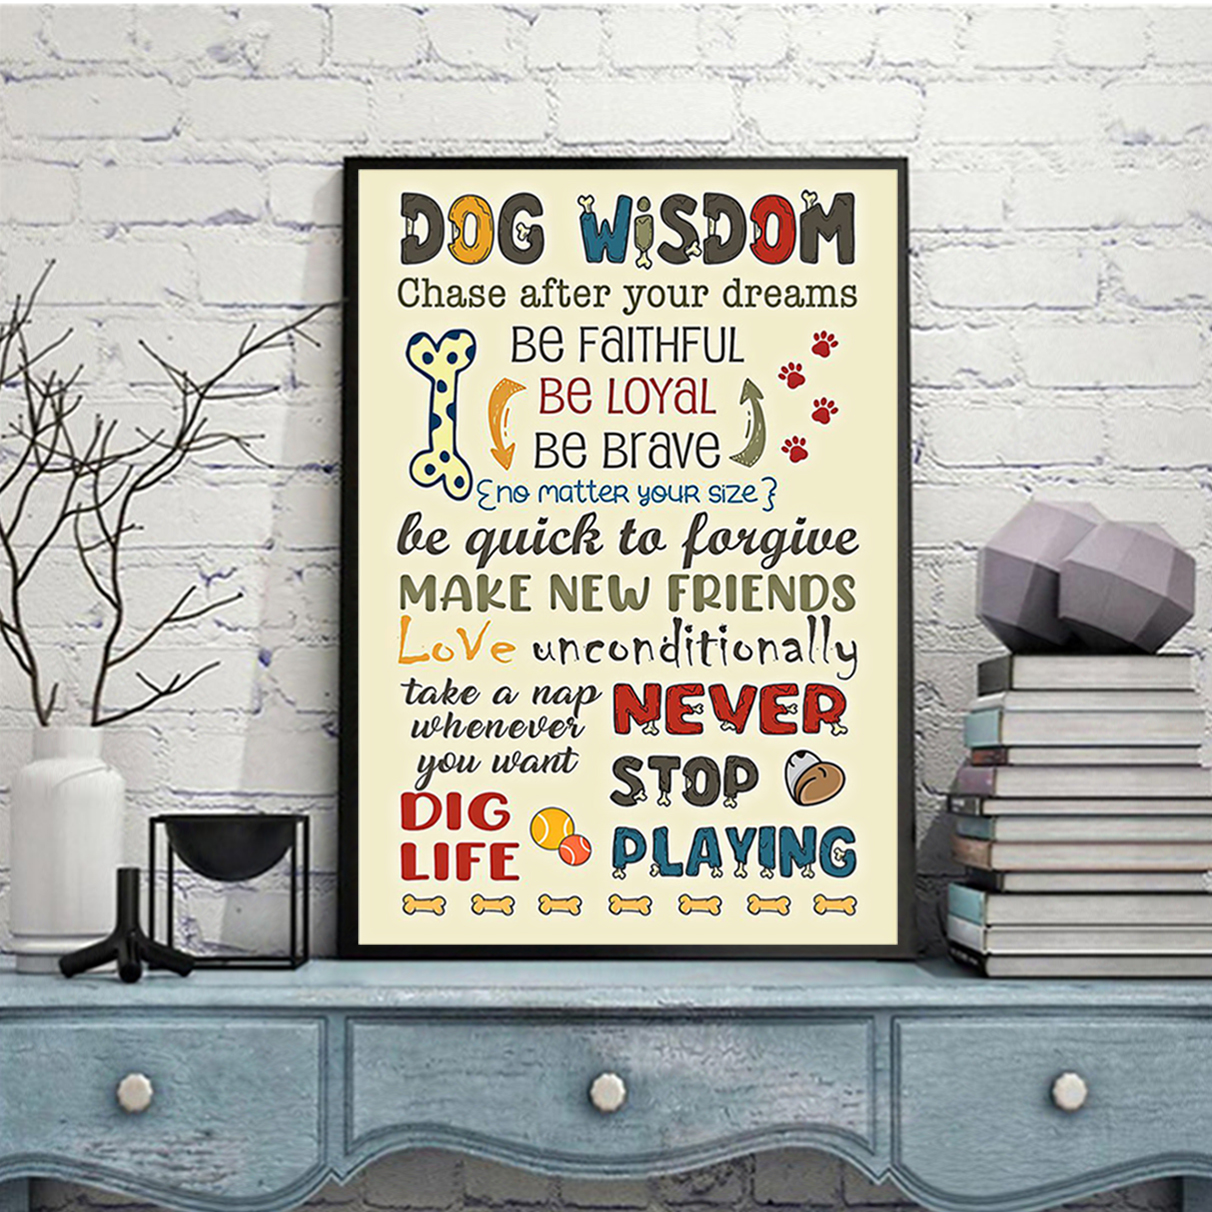 Dog wisdom chase after your dreams poster A1